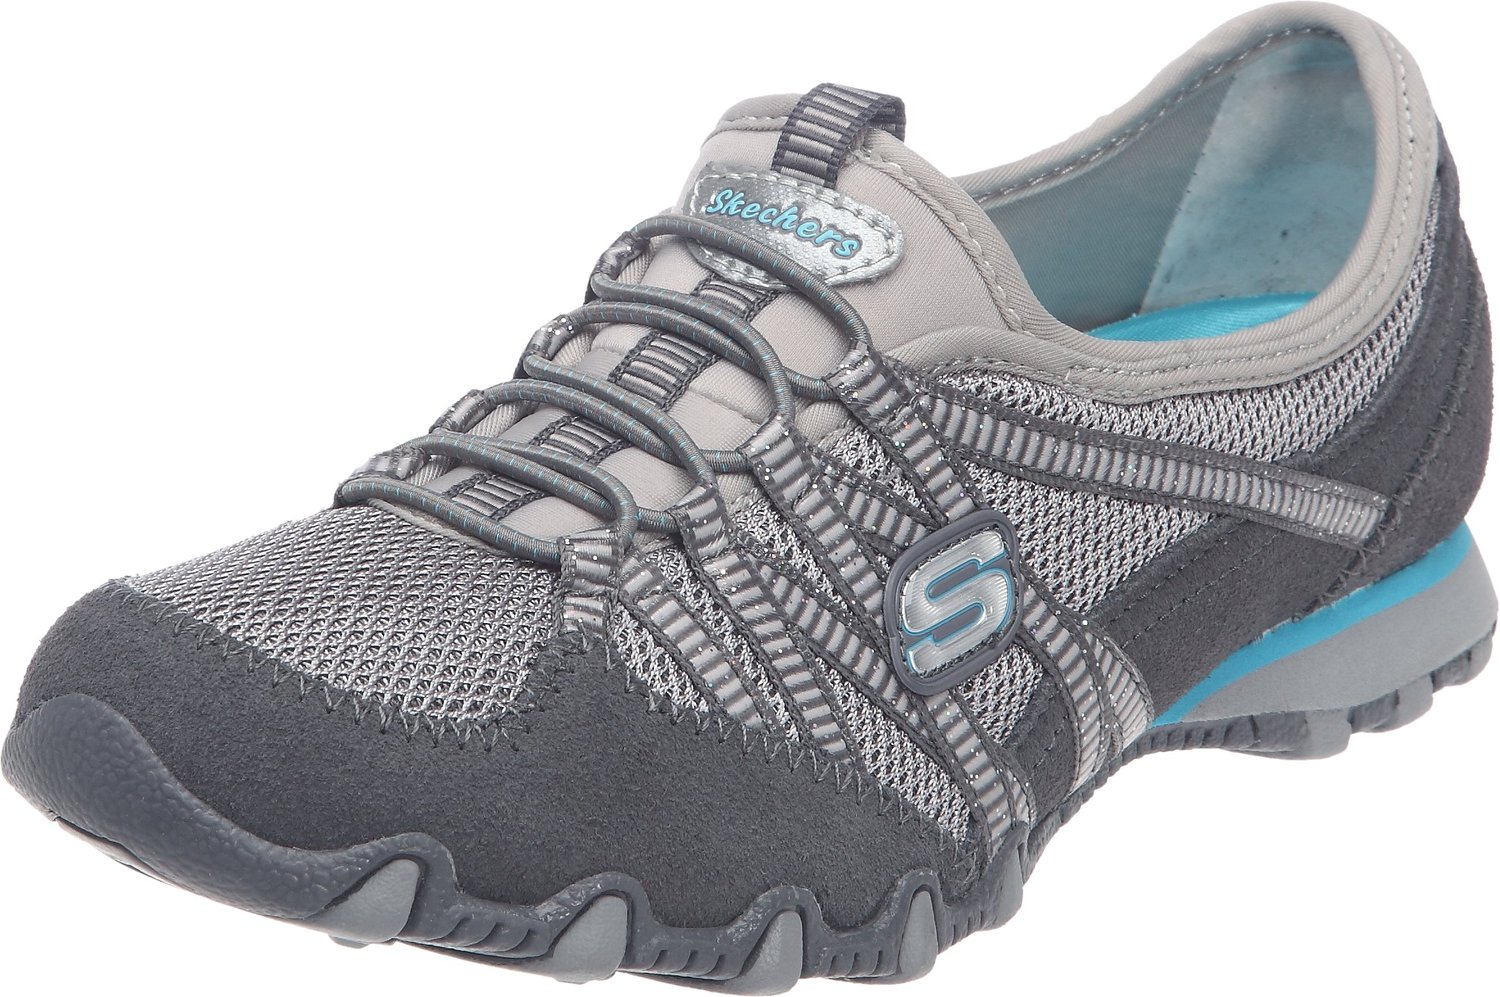 Browse our huge Skechers collection for quality trainers, shoes, boots and flip flops for men, women and kids. We have popular ranges incl. Go Walk, Memory Foam, Flex Appeal and more. While younger kids will love our selection of light up trainers, Twinkle Toes and hi .